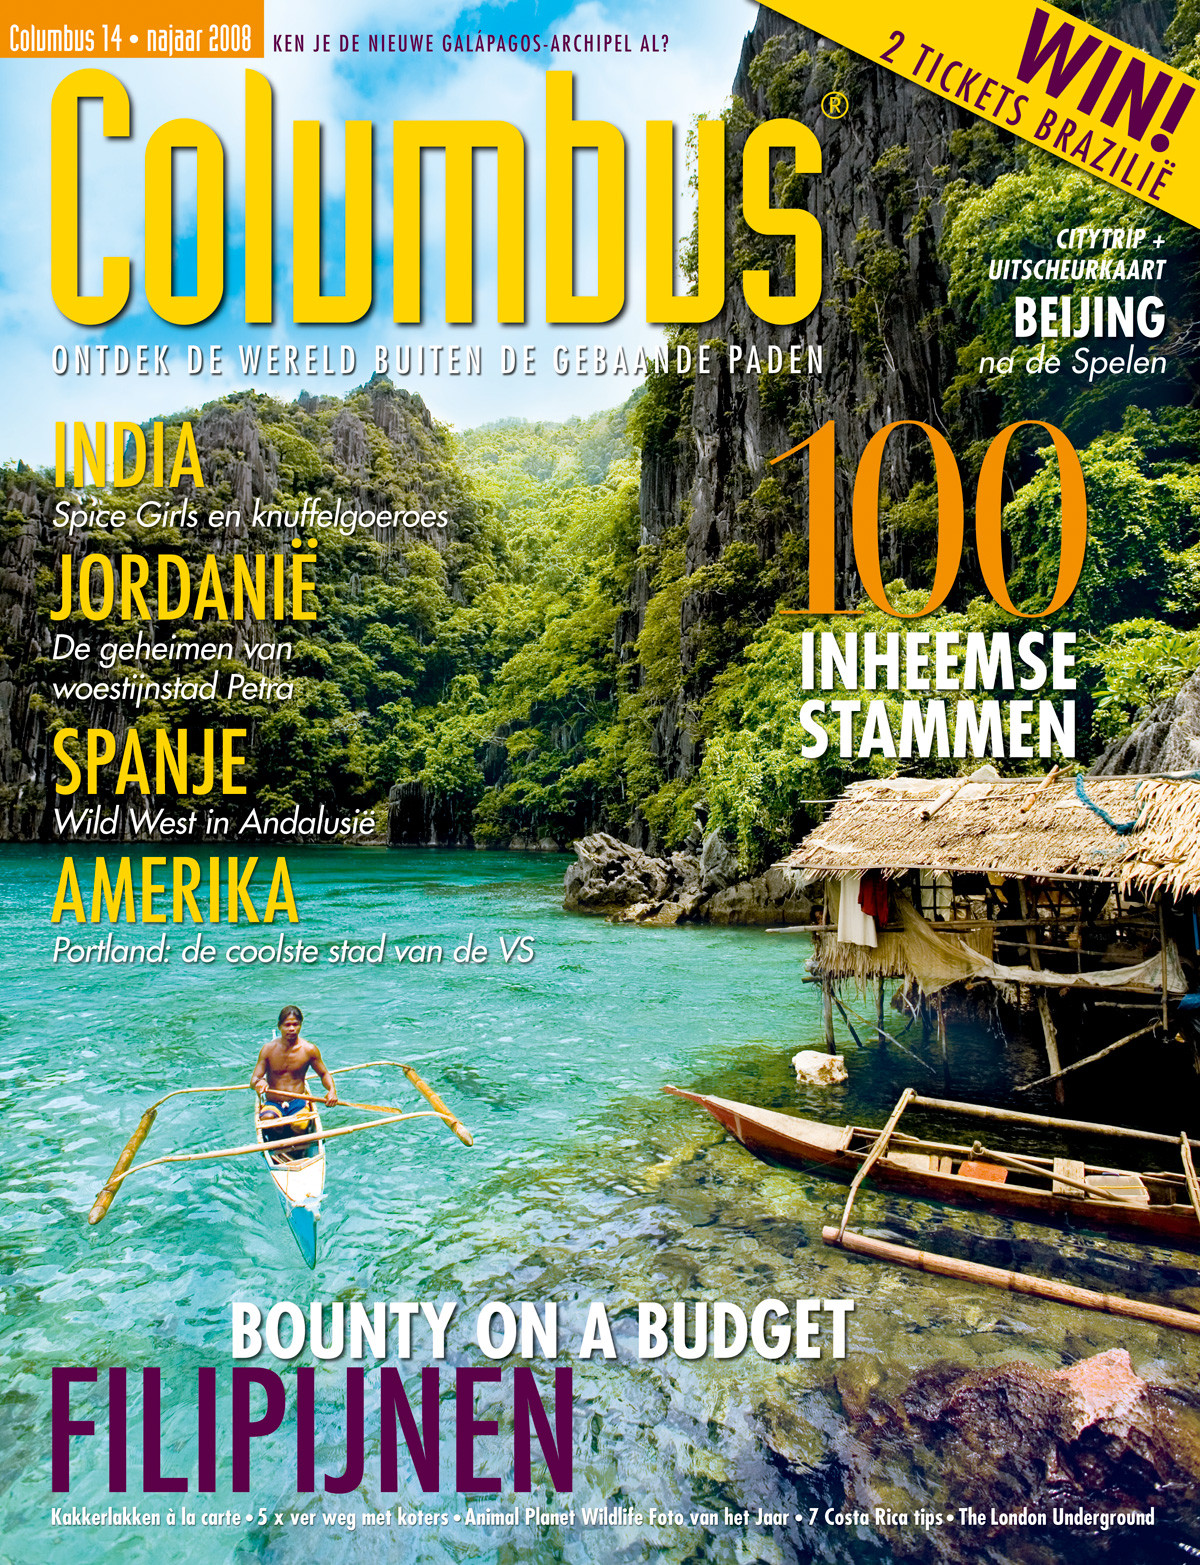 Columbus Travel magazine cover 14